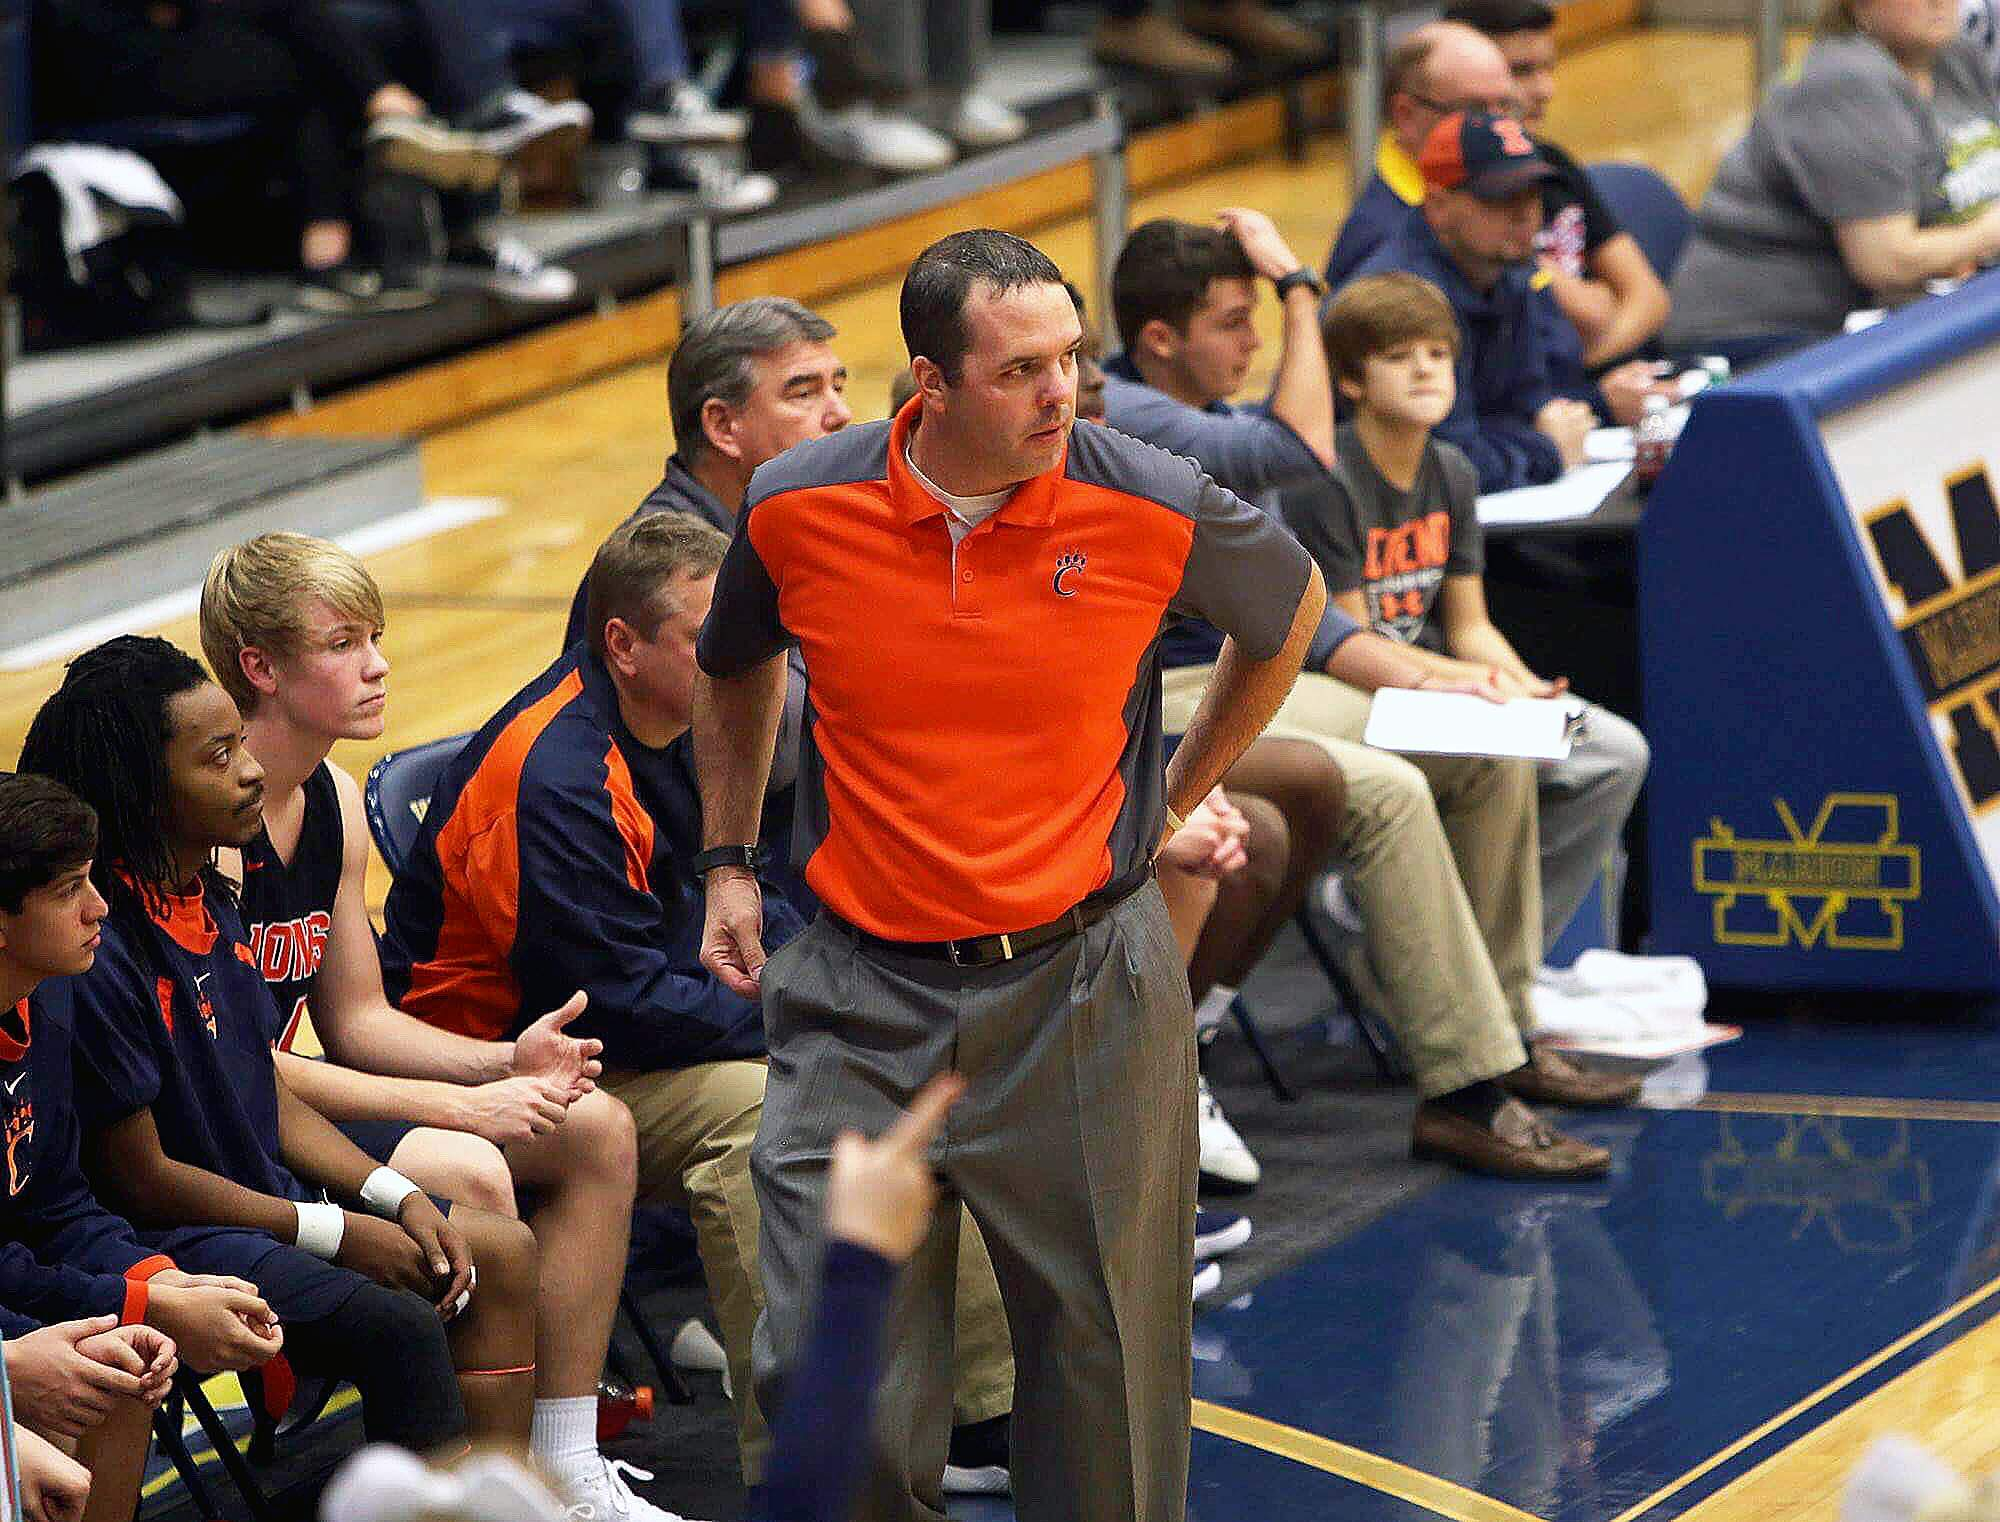 Carterville head coach and the Lions will be the newest member of the Eldorado Holiday Tournament this year, replacing Union County, Ky. The Braves were 9-13 in six seasons in the EHT.